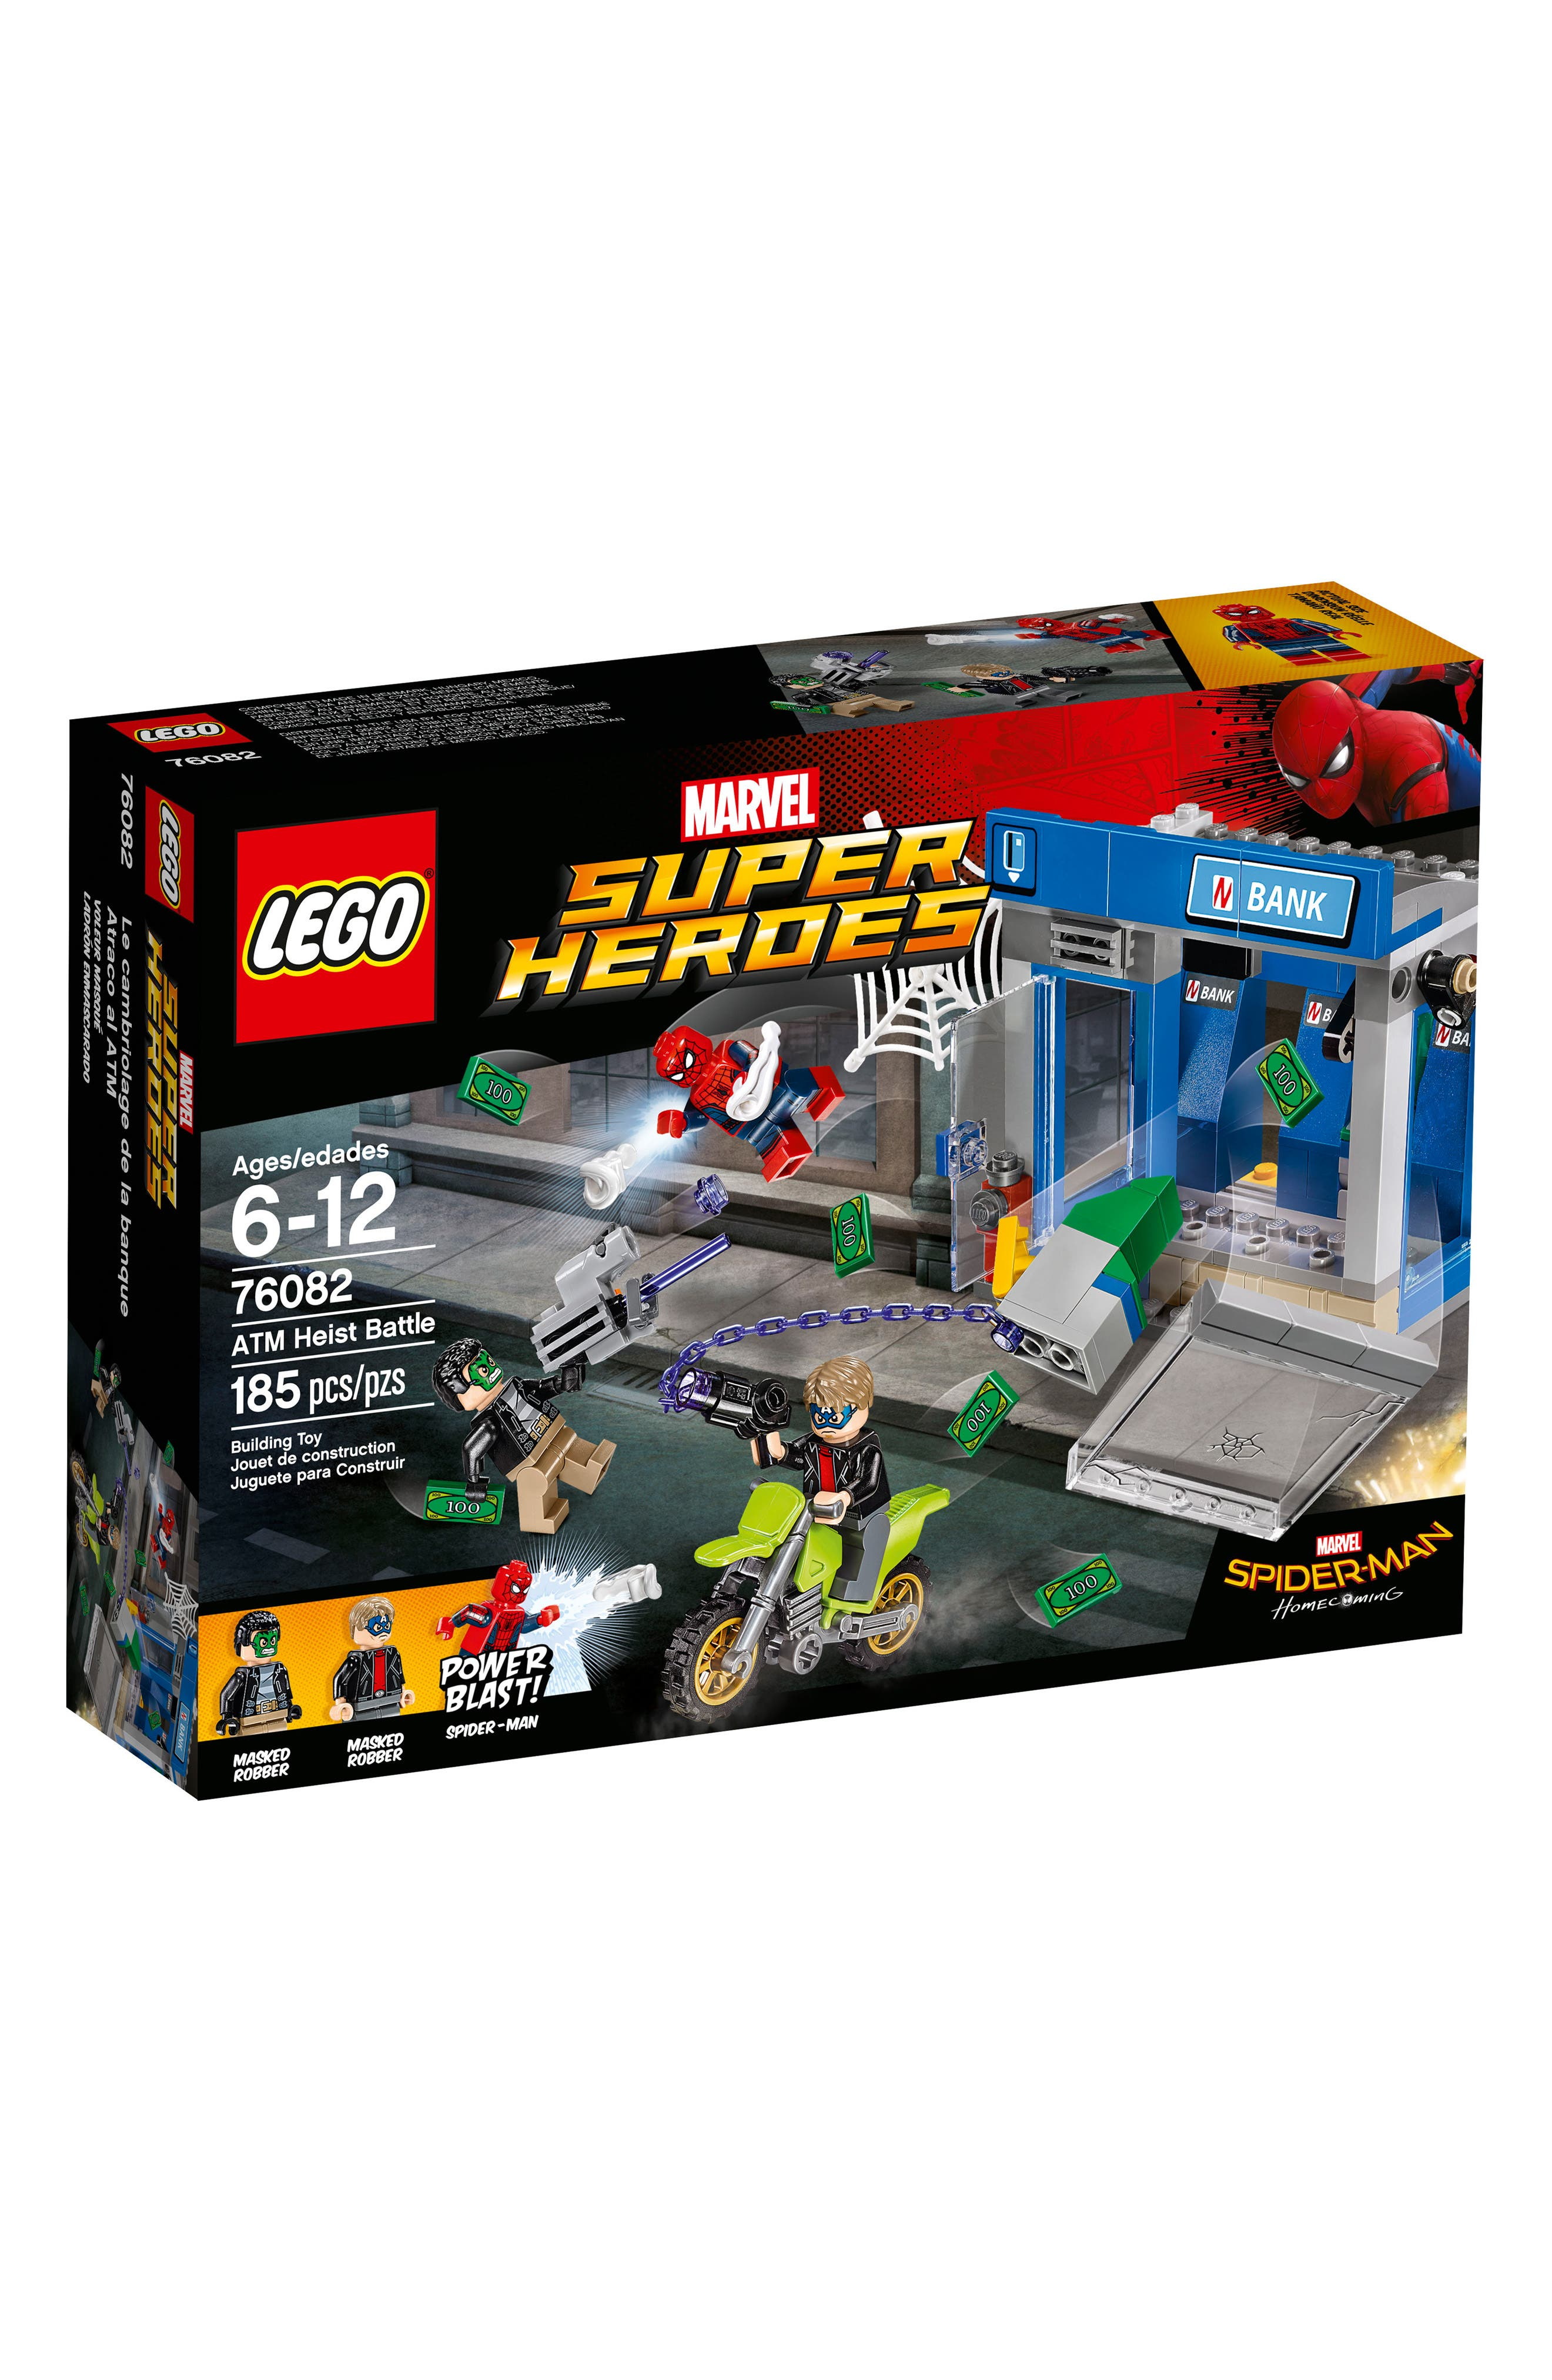 Marvel Super Heroes Spider-Man ATM Heist Battle Set - 76082,                             Main thumbnail 1, color,                             400